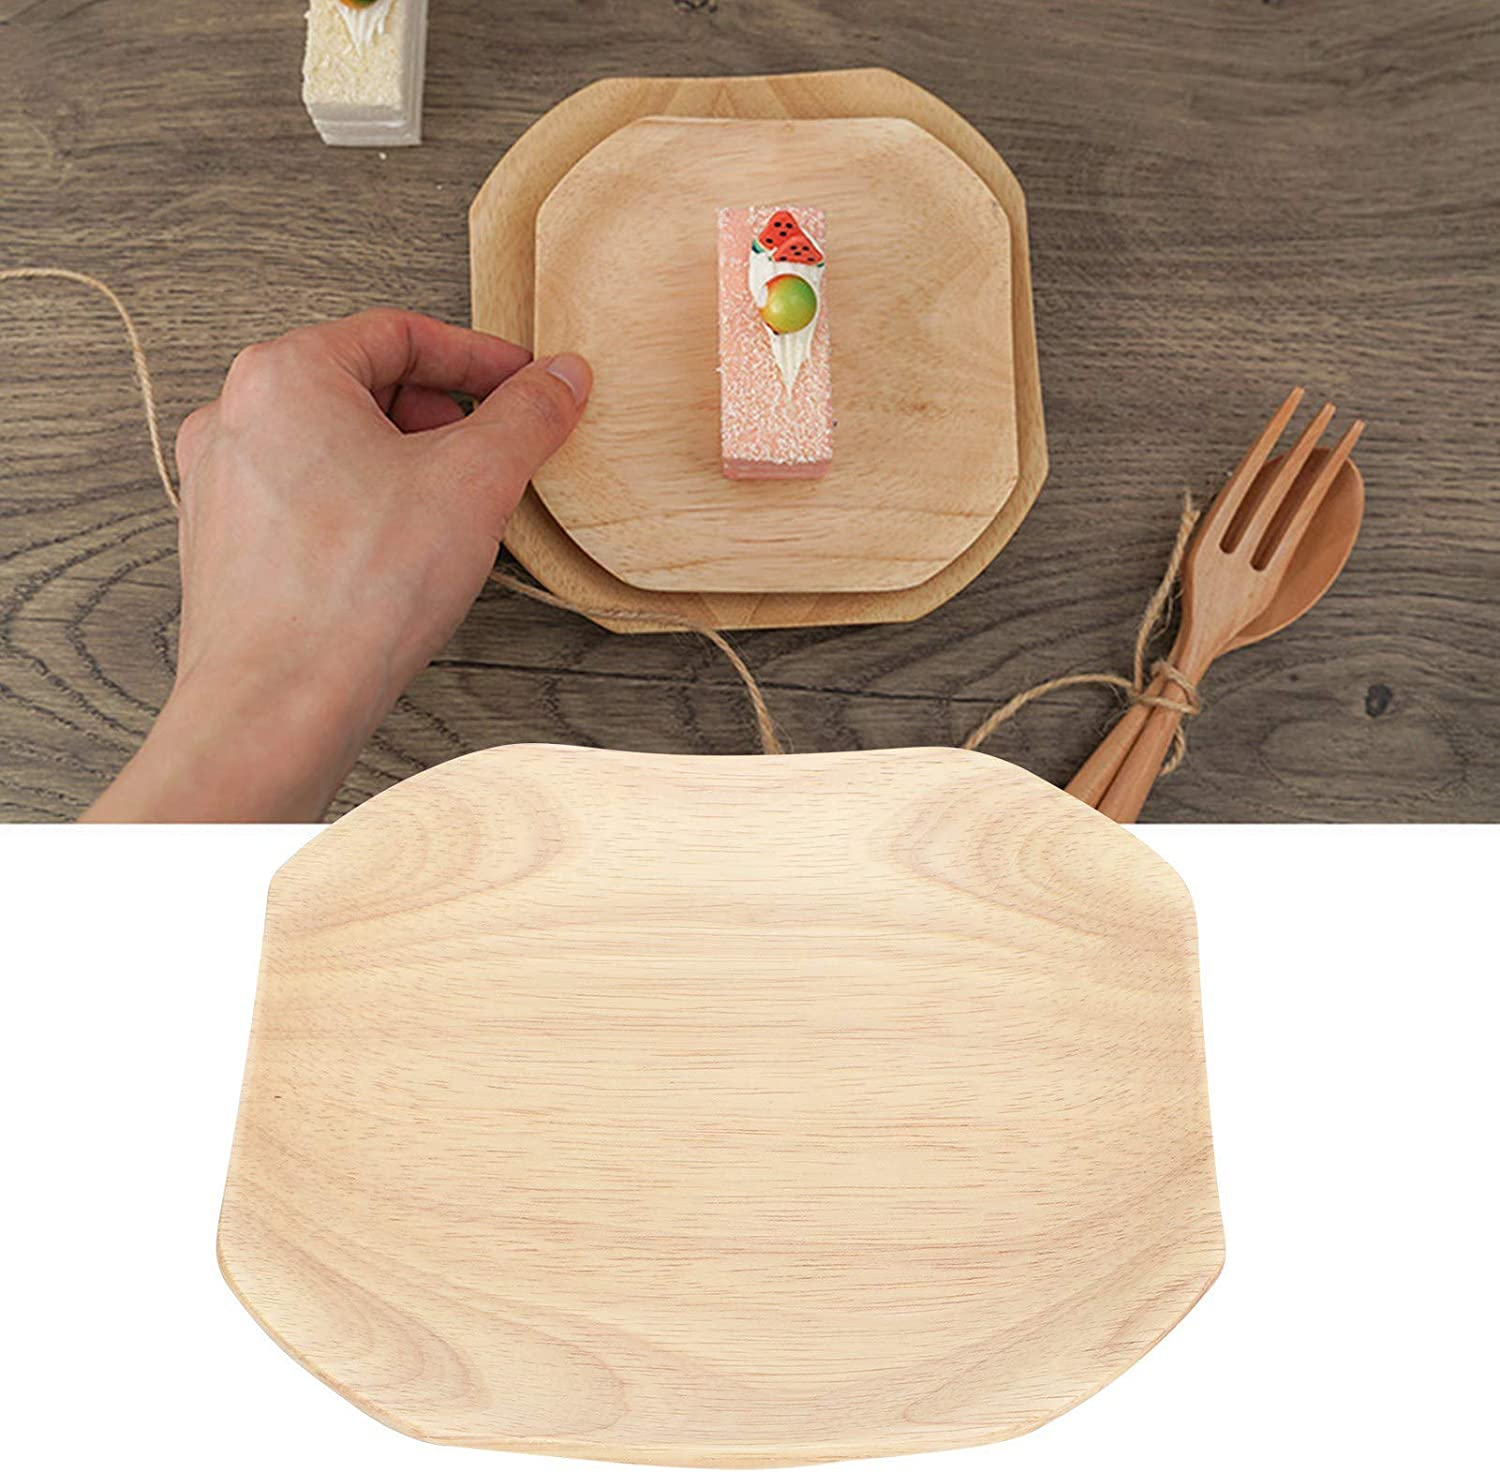 Astibym Cake Tray Creative Sushi Candy L Max 71% OFF Dish SALENEW very popular Decoration for